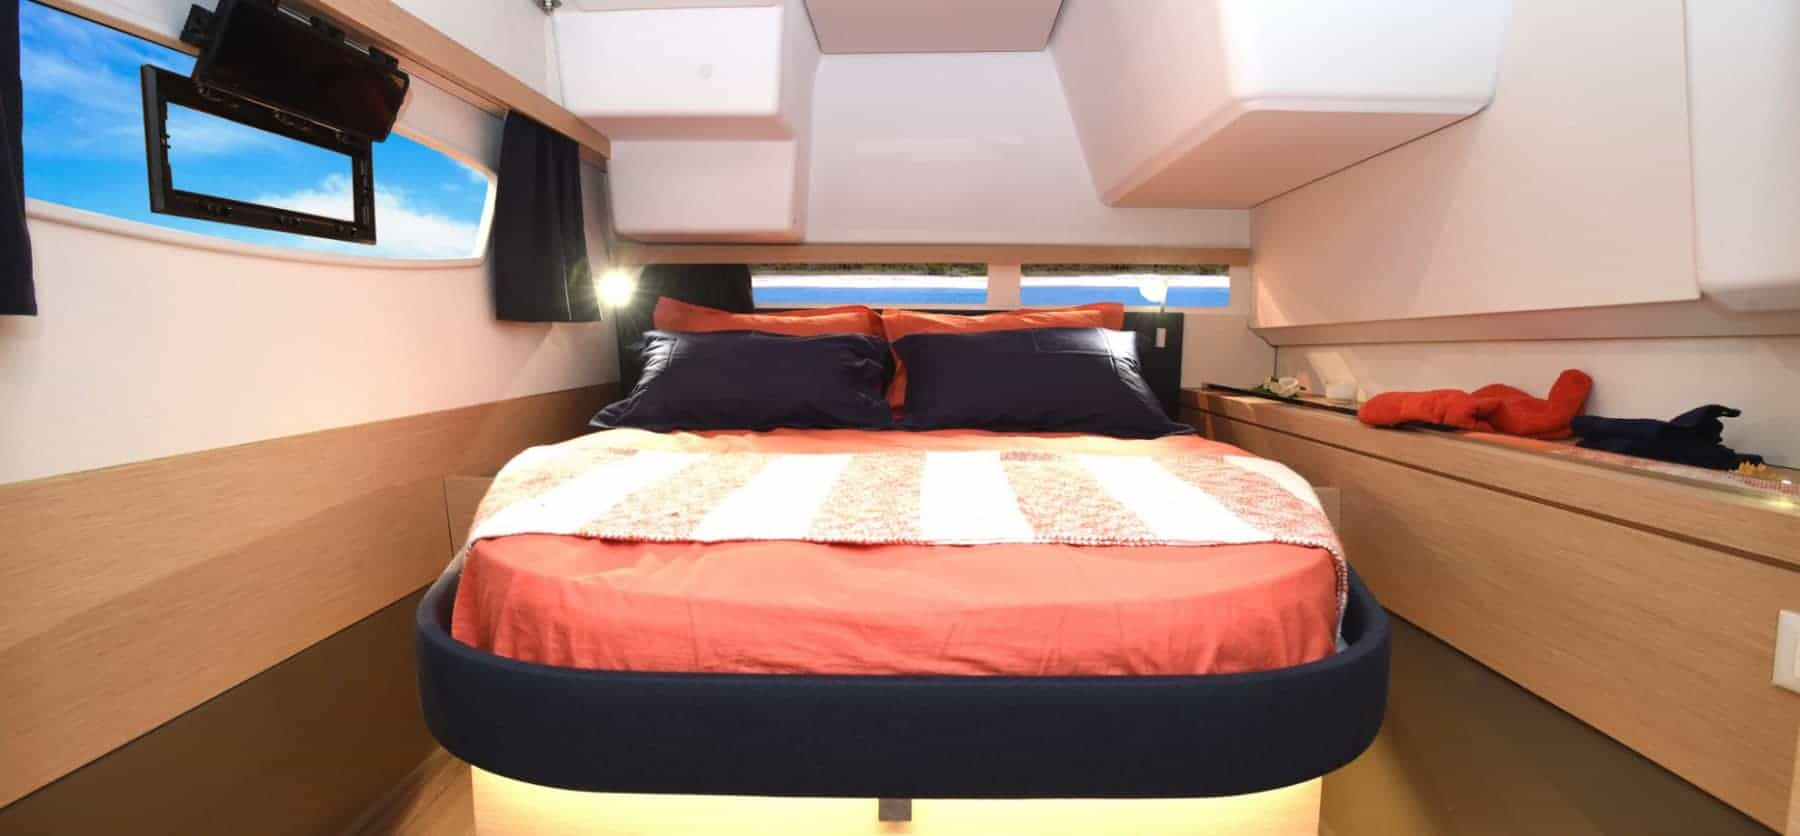 The owners cabin in the Fountaine Pajot Lucia 40 looking really inviting with red bed sheets and black pillows